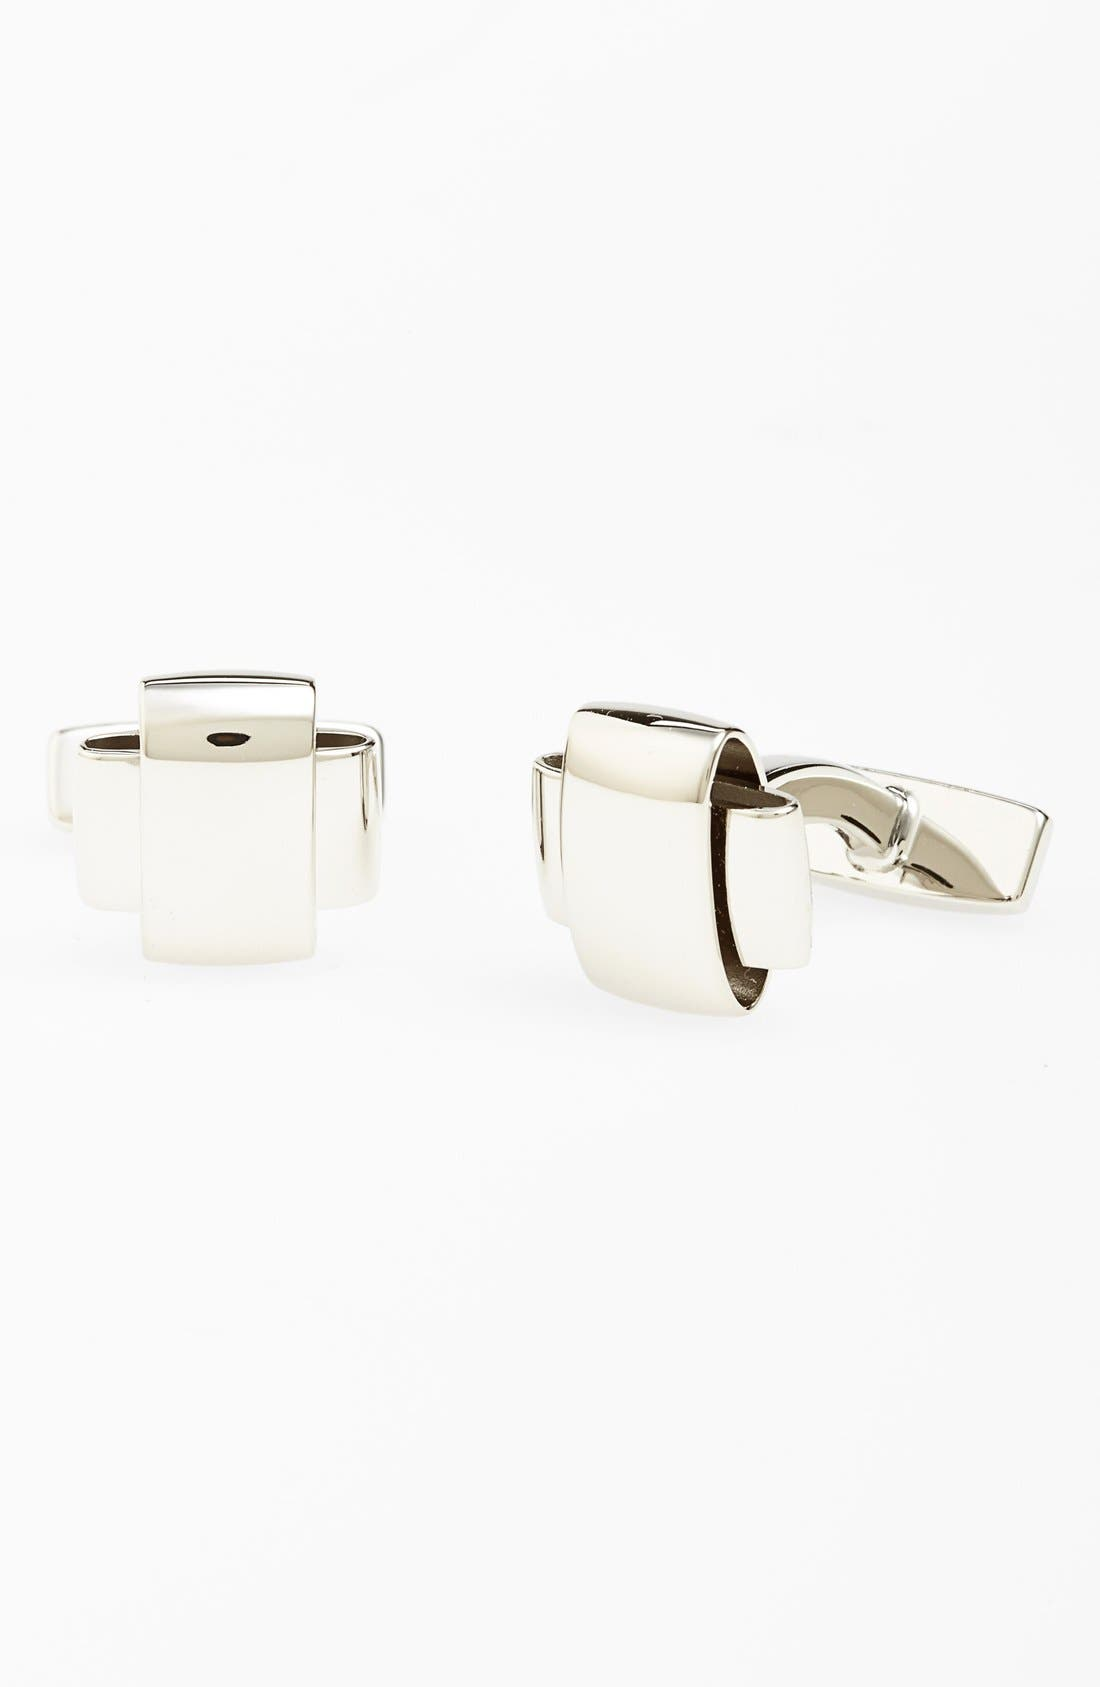 Alternate Image 1 Selected - BOSS HUGO BOSS 'Olgar' Cuff Links